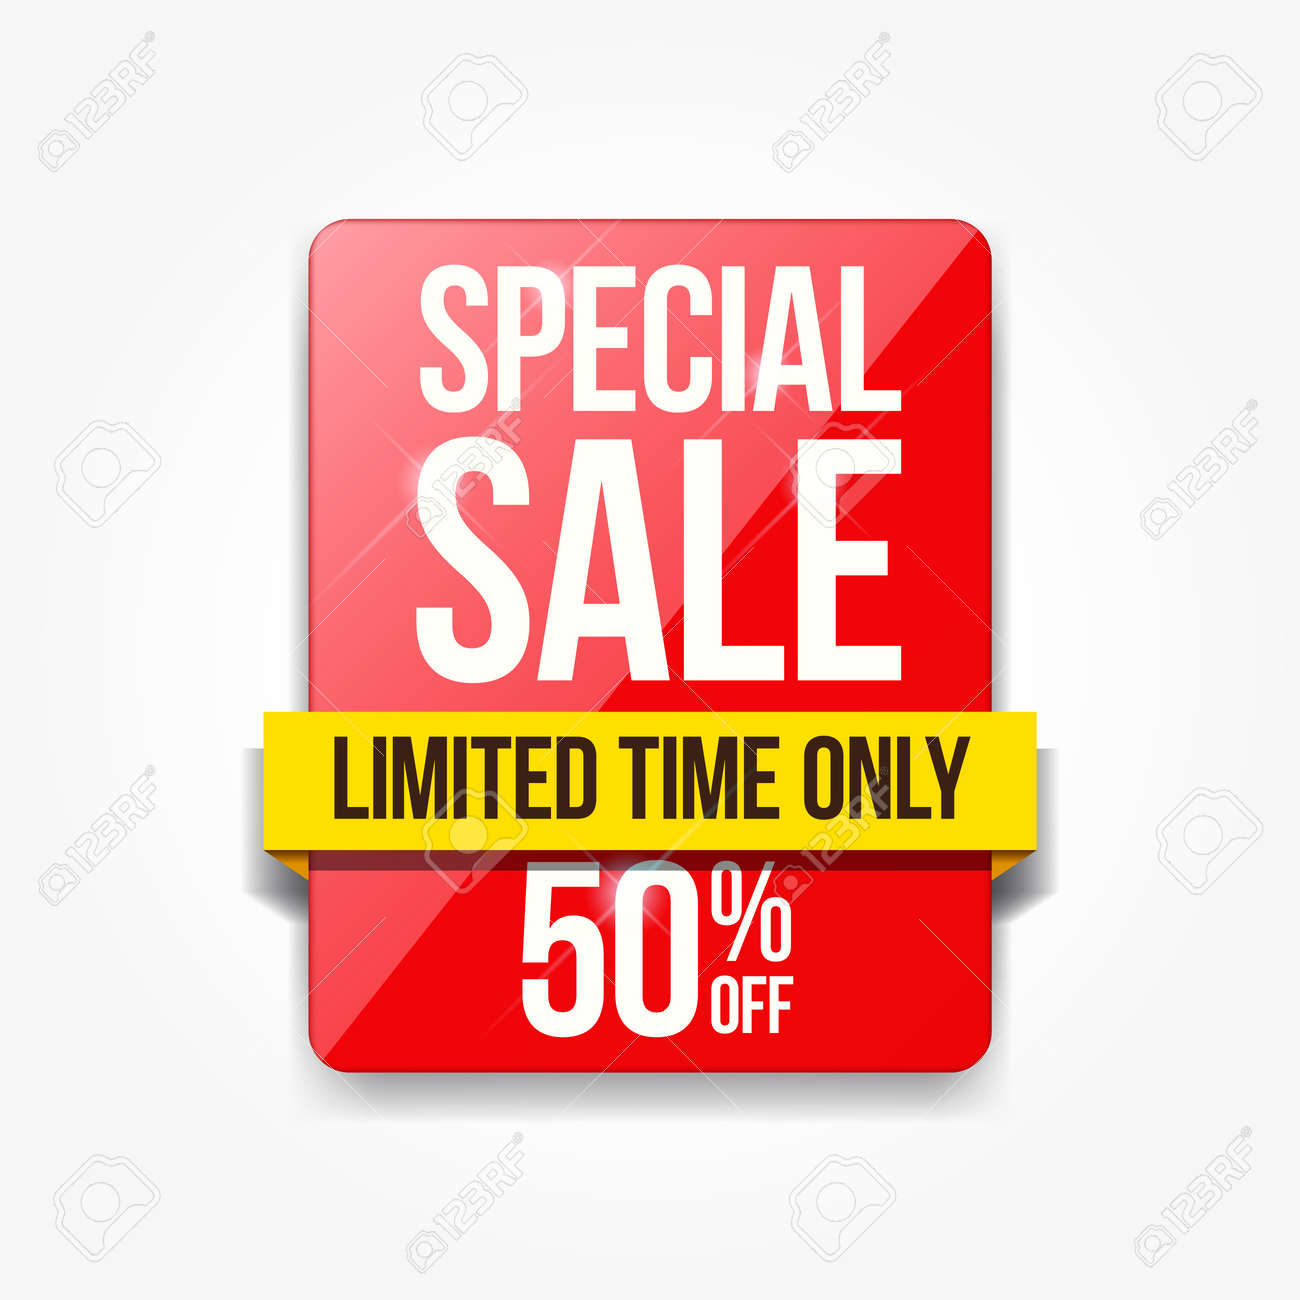 Special Sale Limited Time Only - 126801618